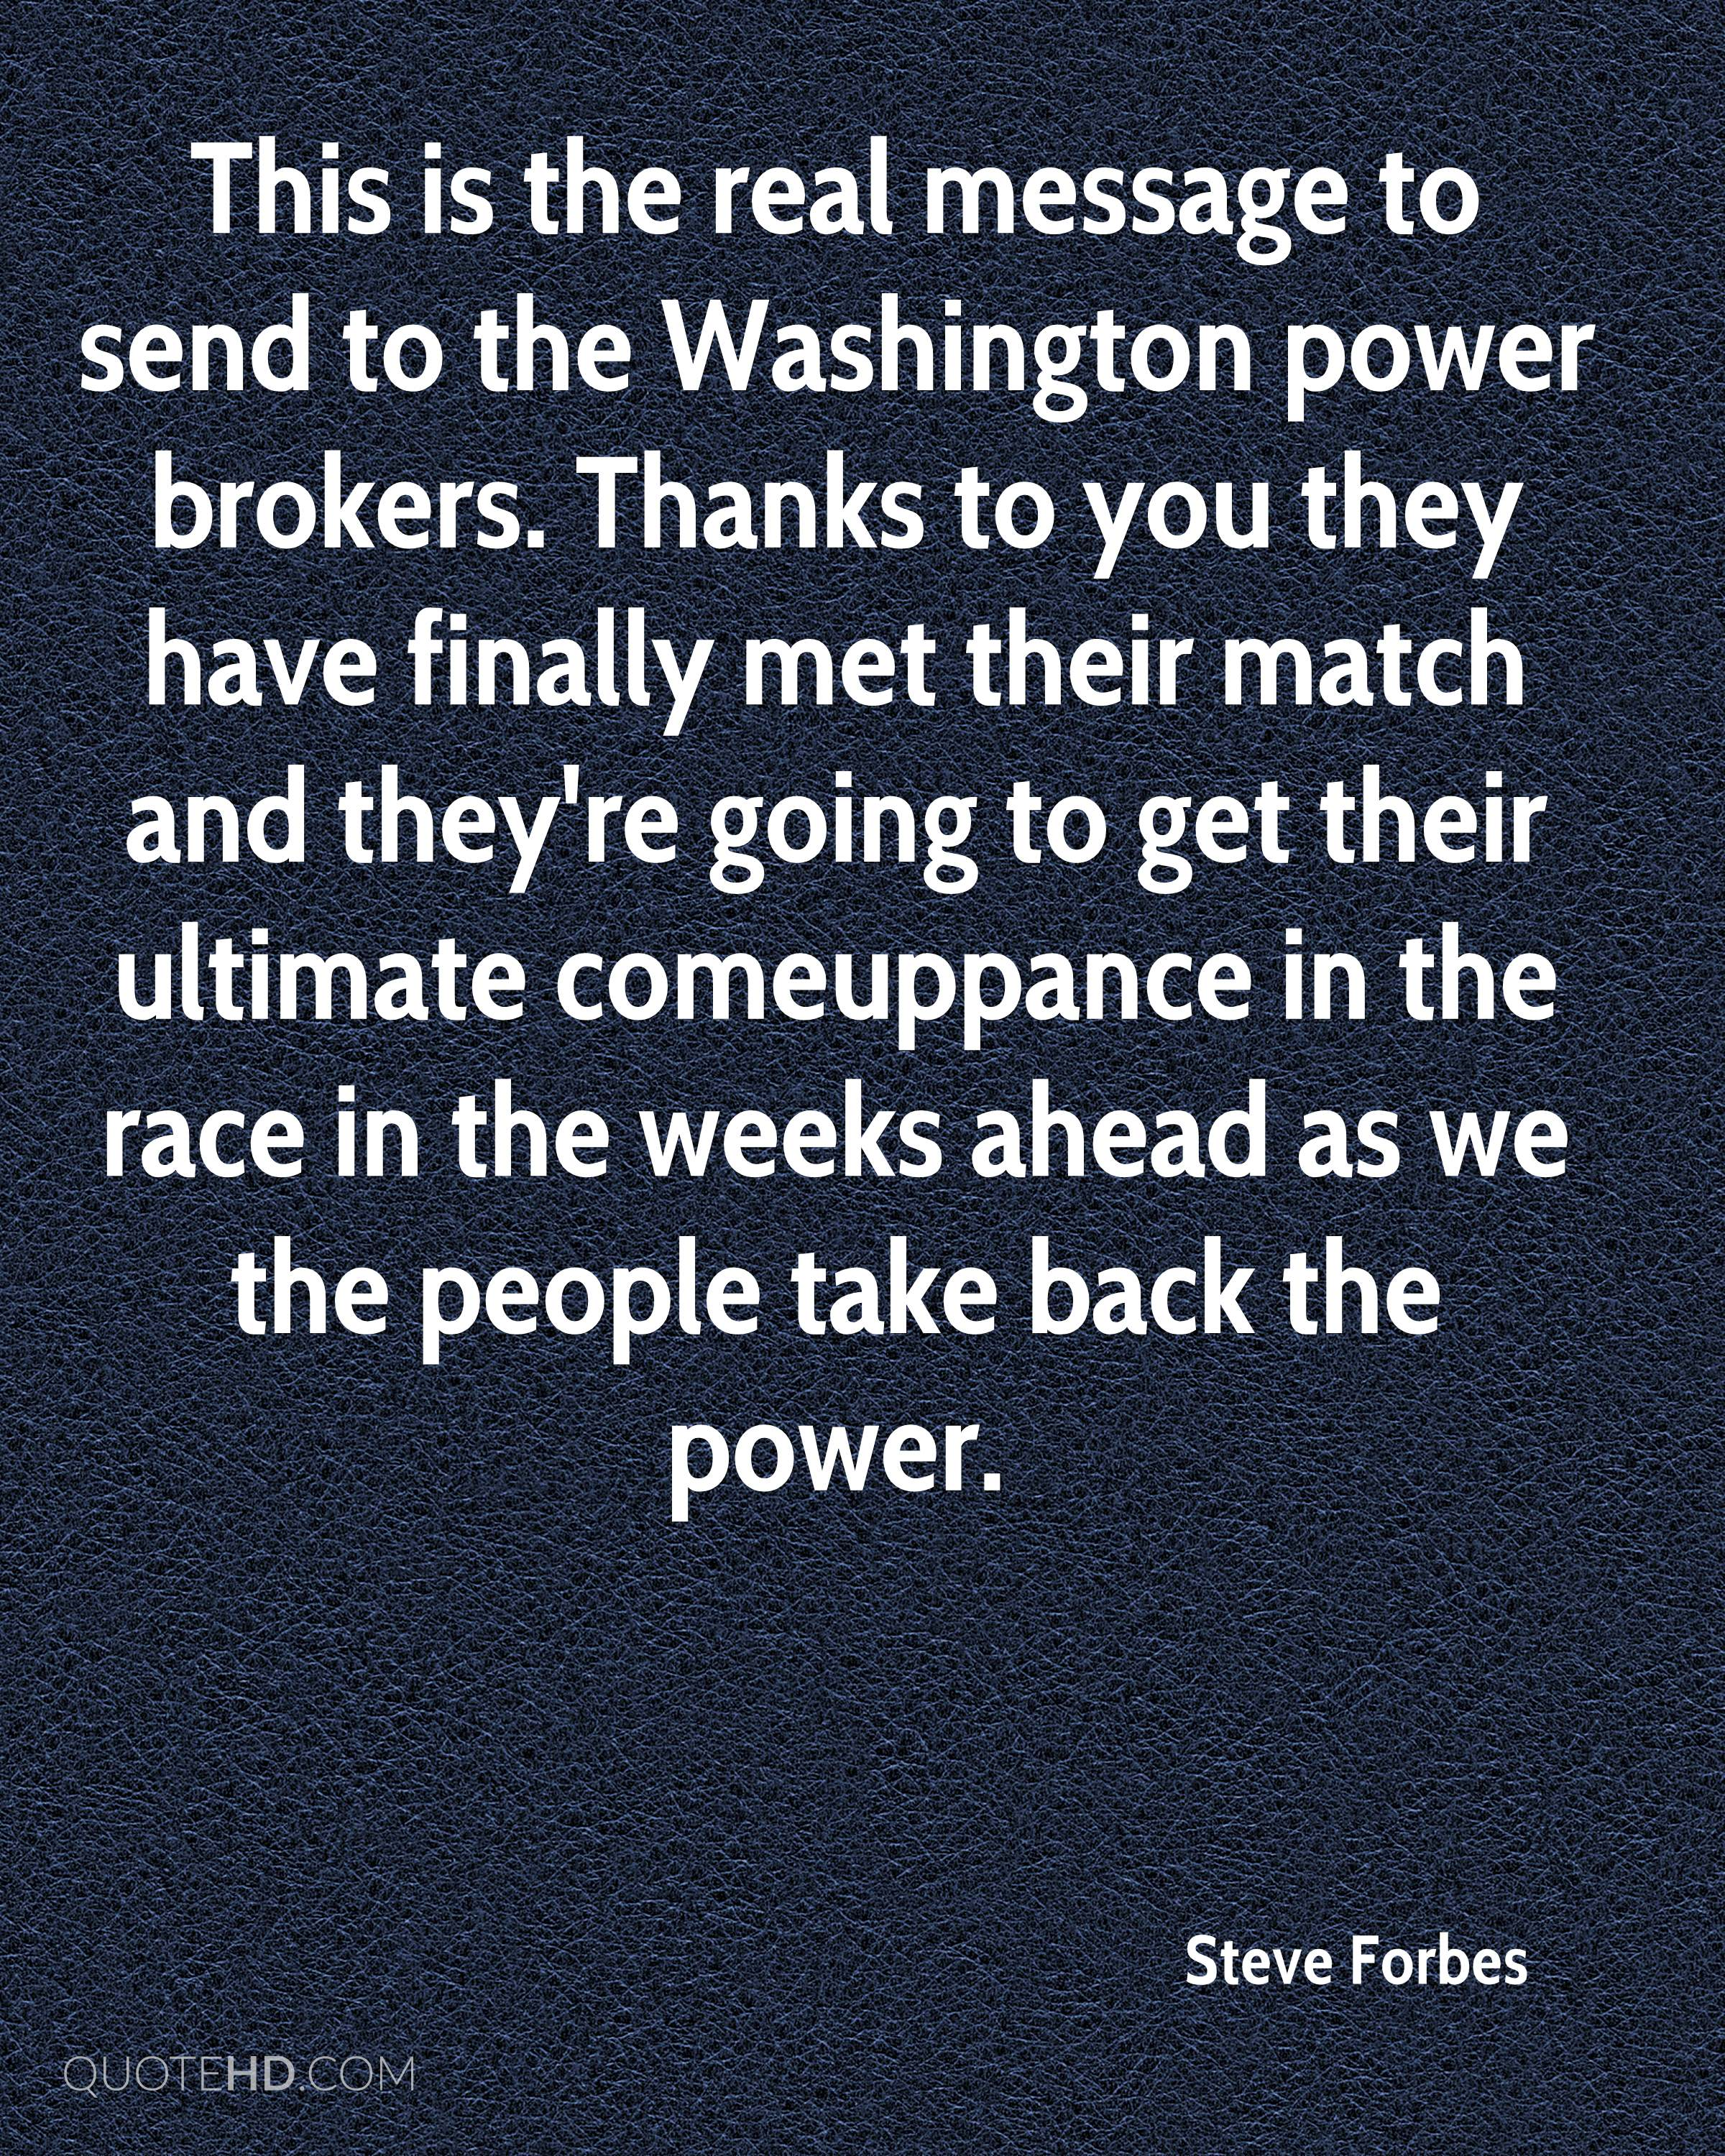 This is the real message to send to the Washington power brokers. Thanks to you they have finally met their match and they're going to get their ultimate comeuppance in the race in the weeks ahead as we the people take back the power.